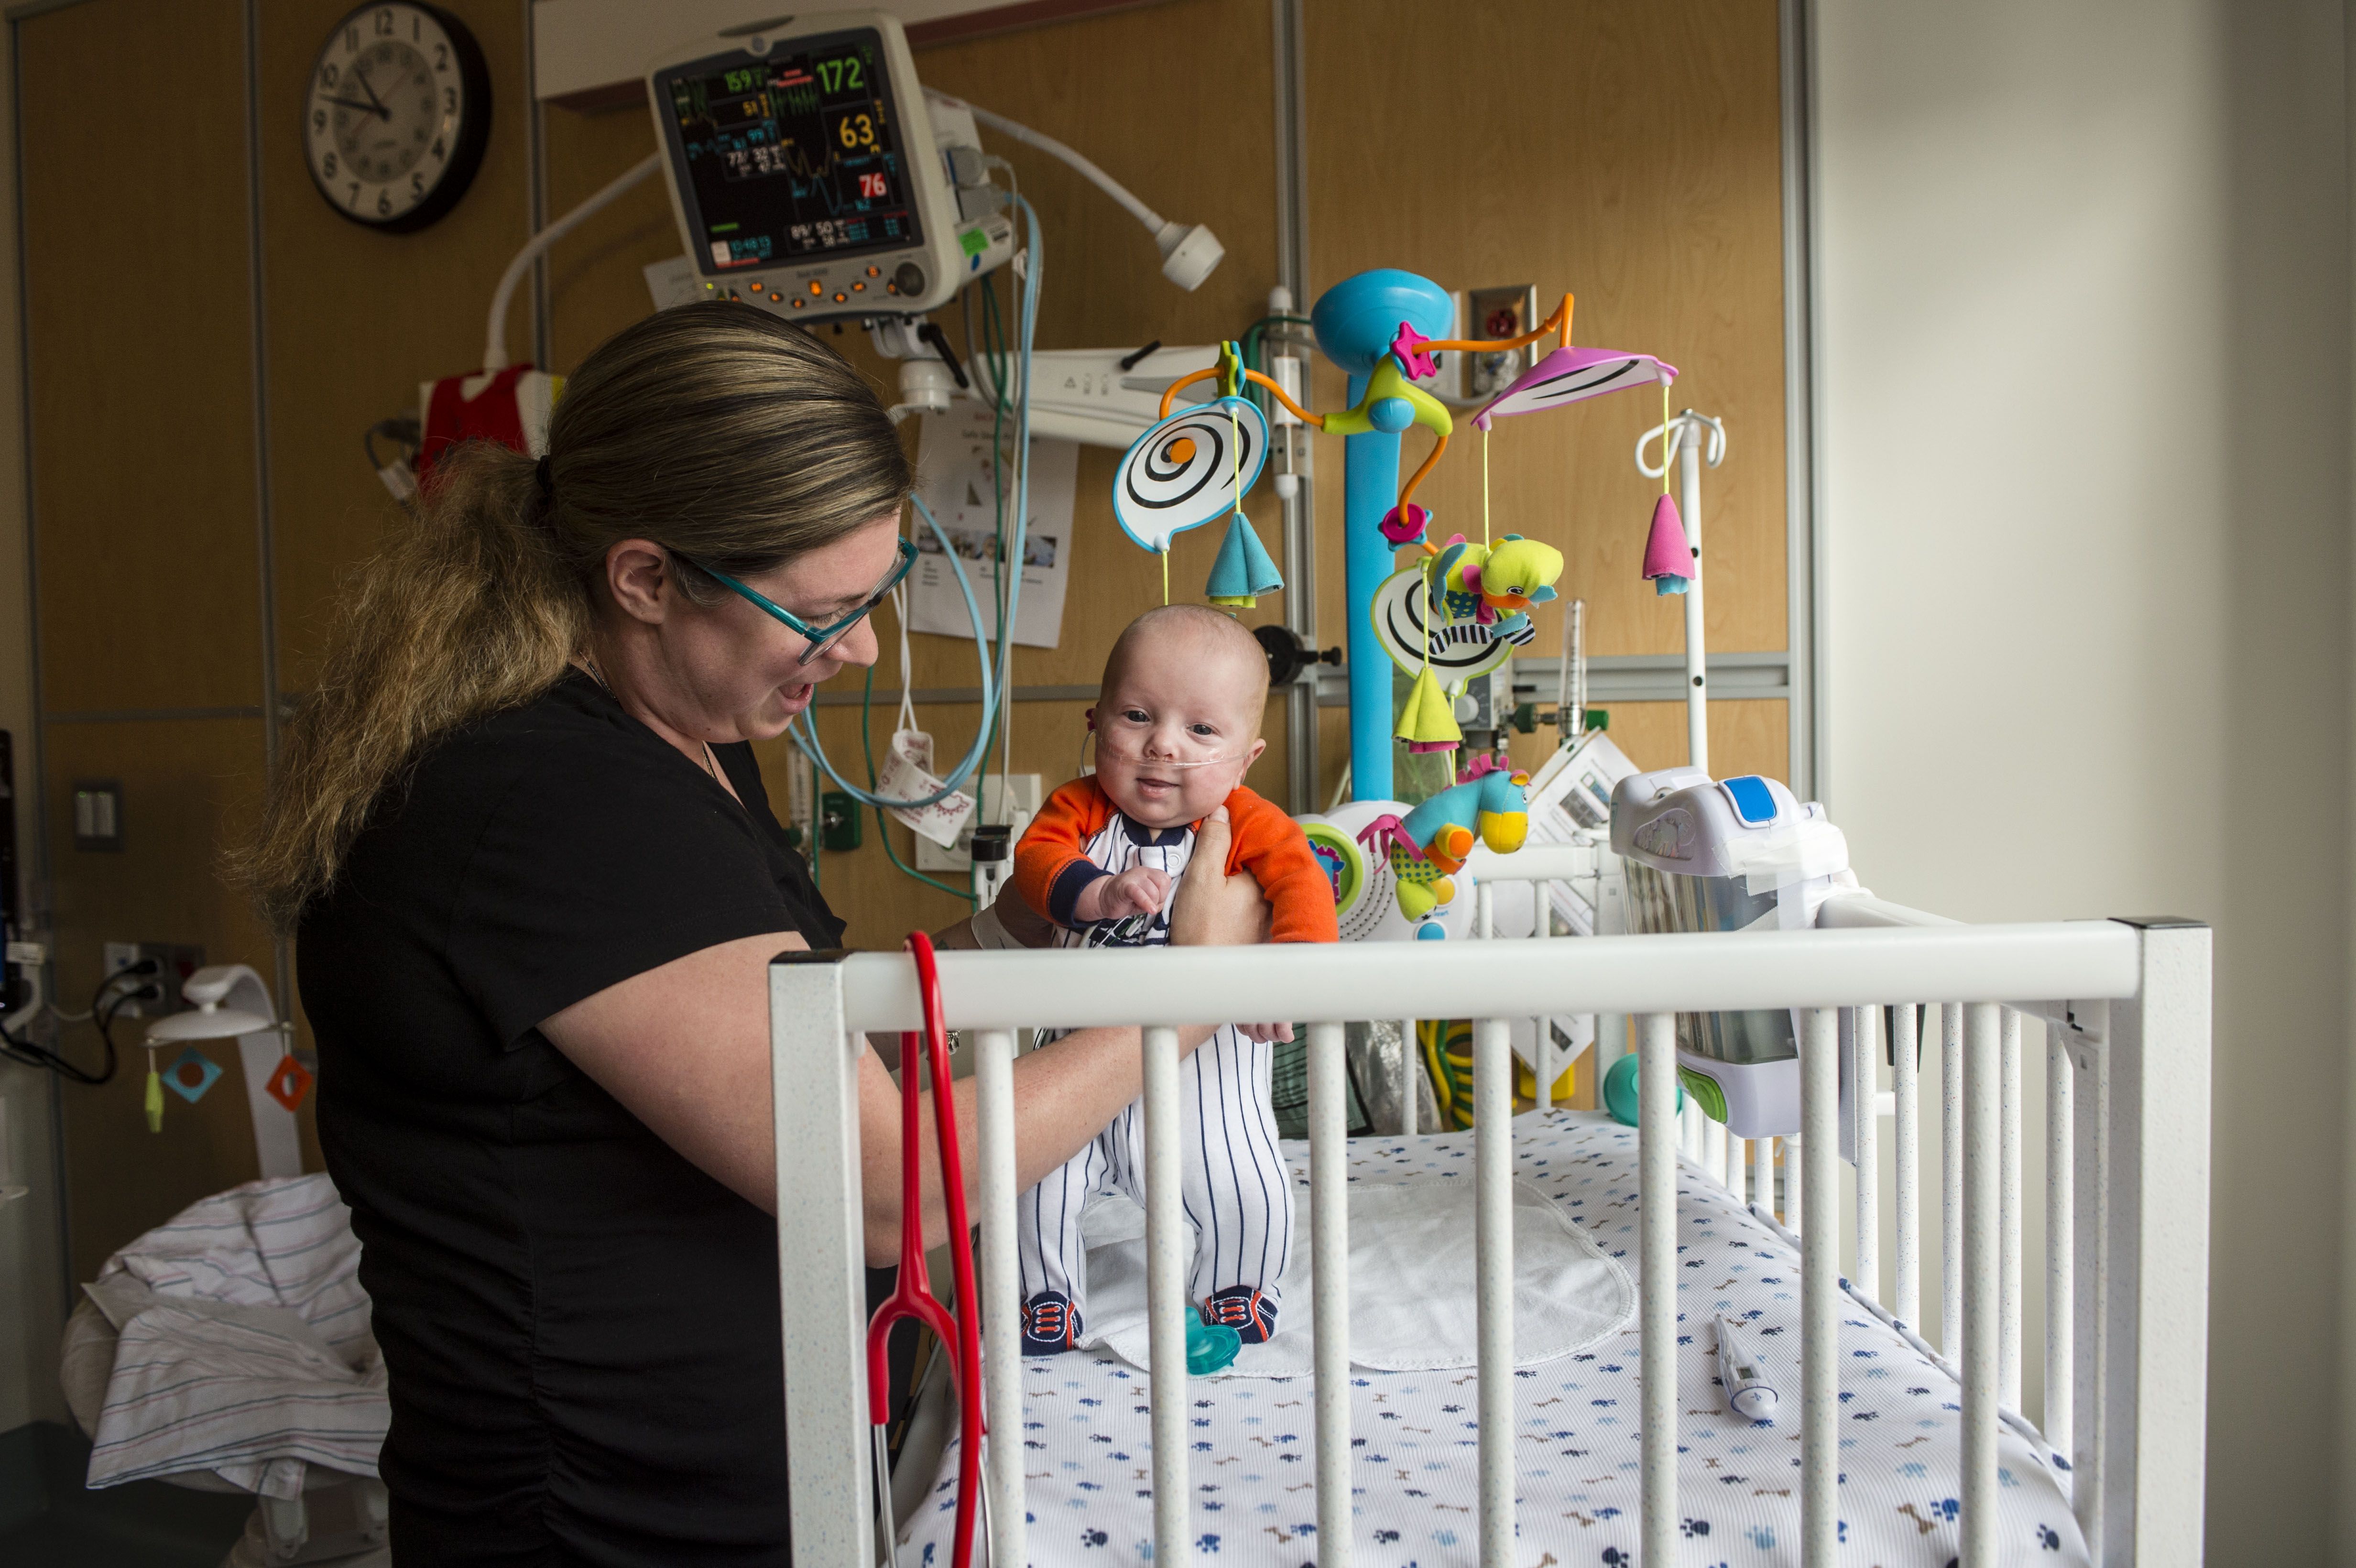 Single patient rooms offer added privacy for families